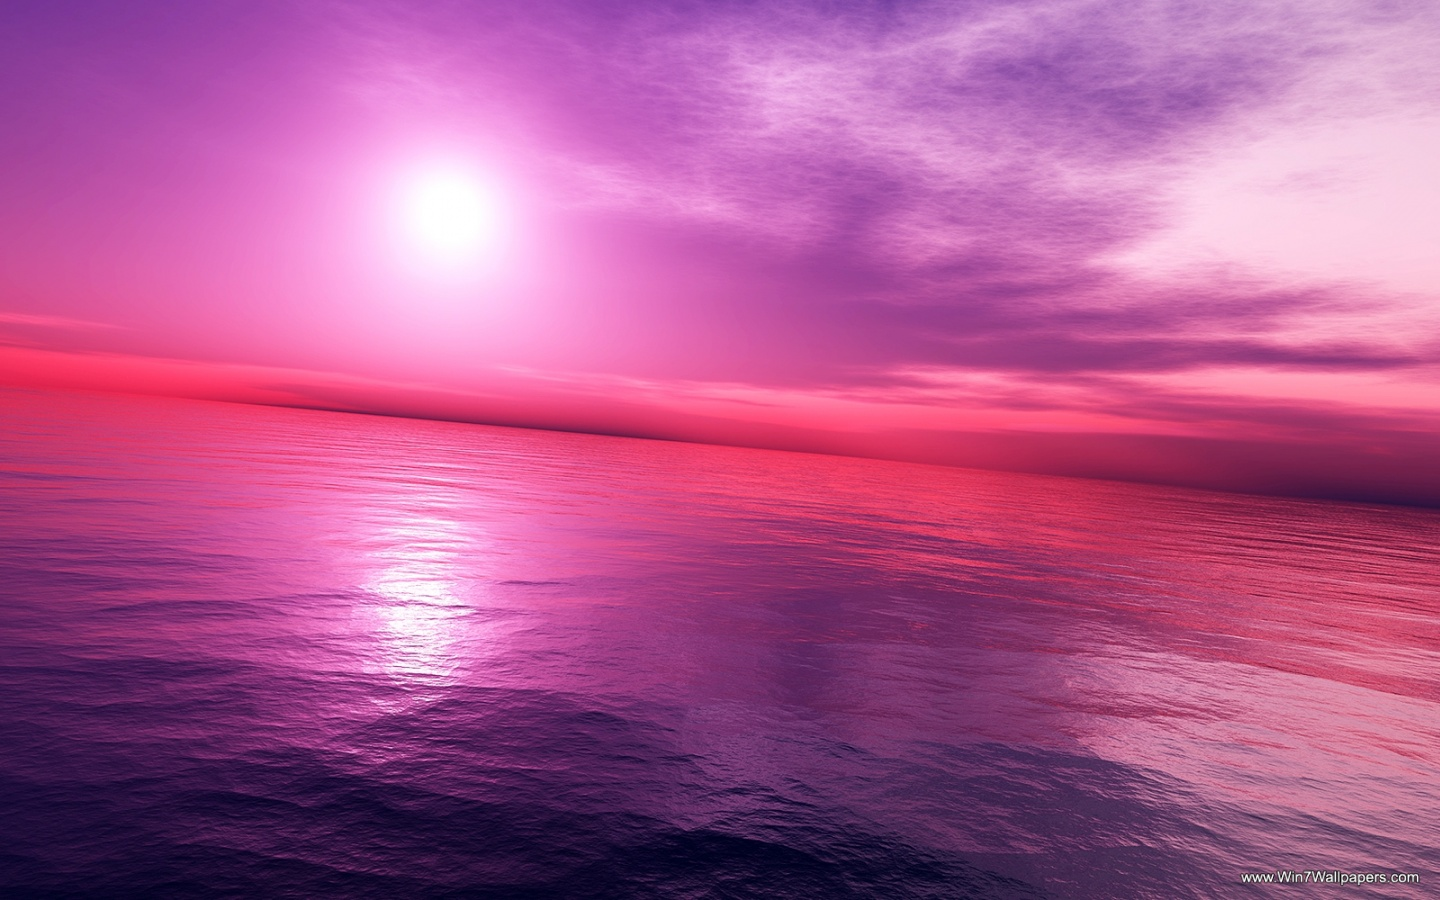 Download Pink Sunset Wallpaper 1440x900jpg Picture 1440x900